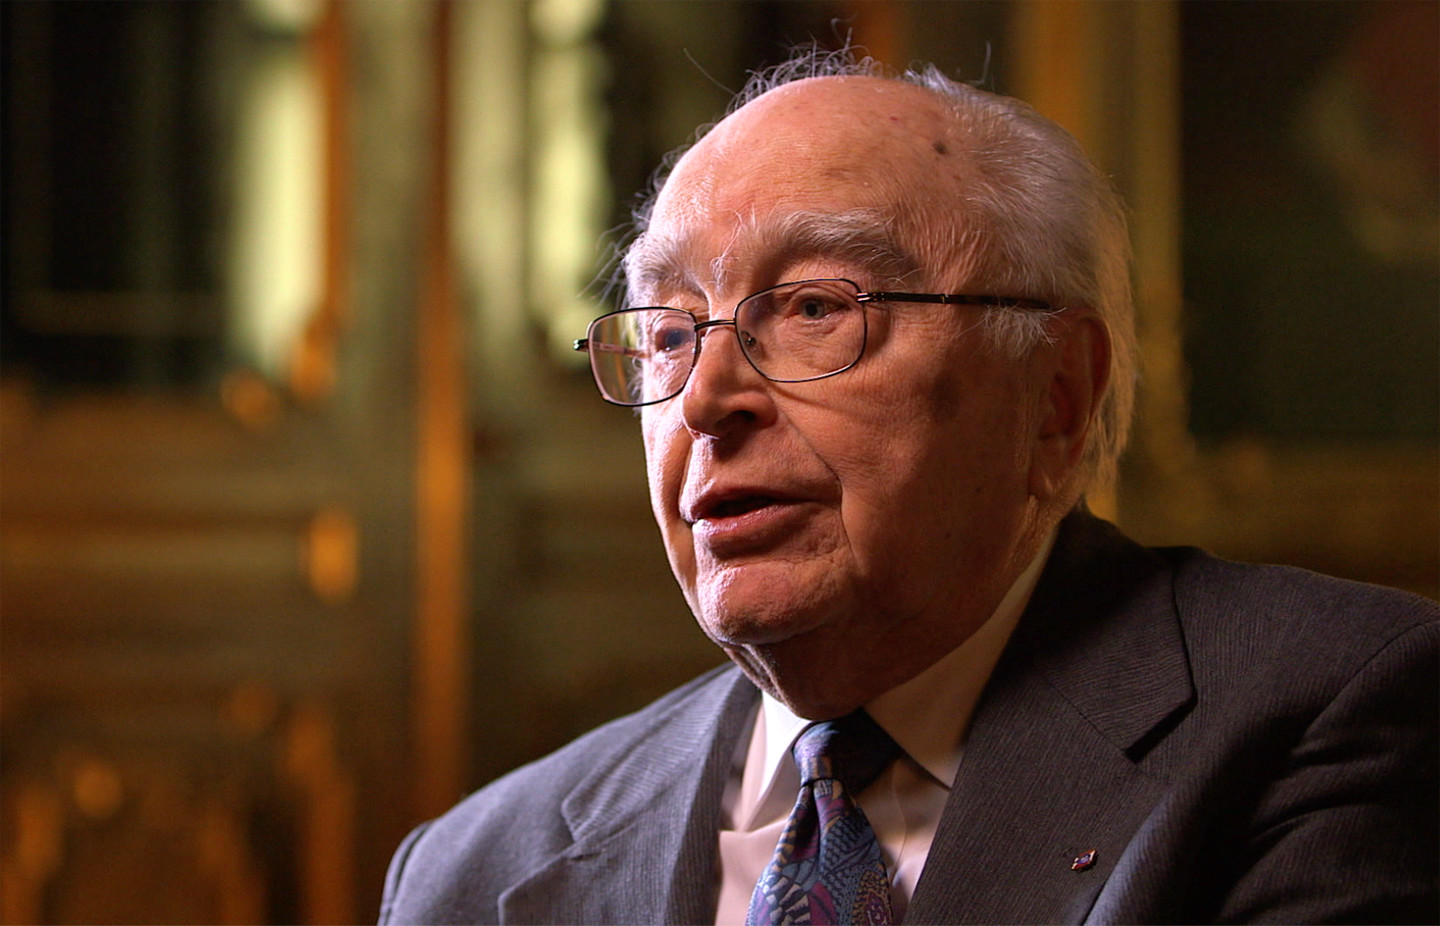 Dr. Stanislaw Grygiel, interviewee on John Paul 2: Liberating a Continent, the fall of Communism.